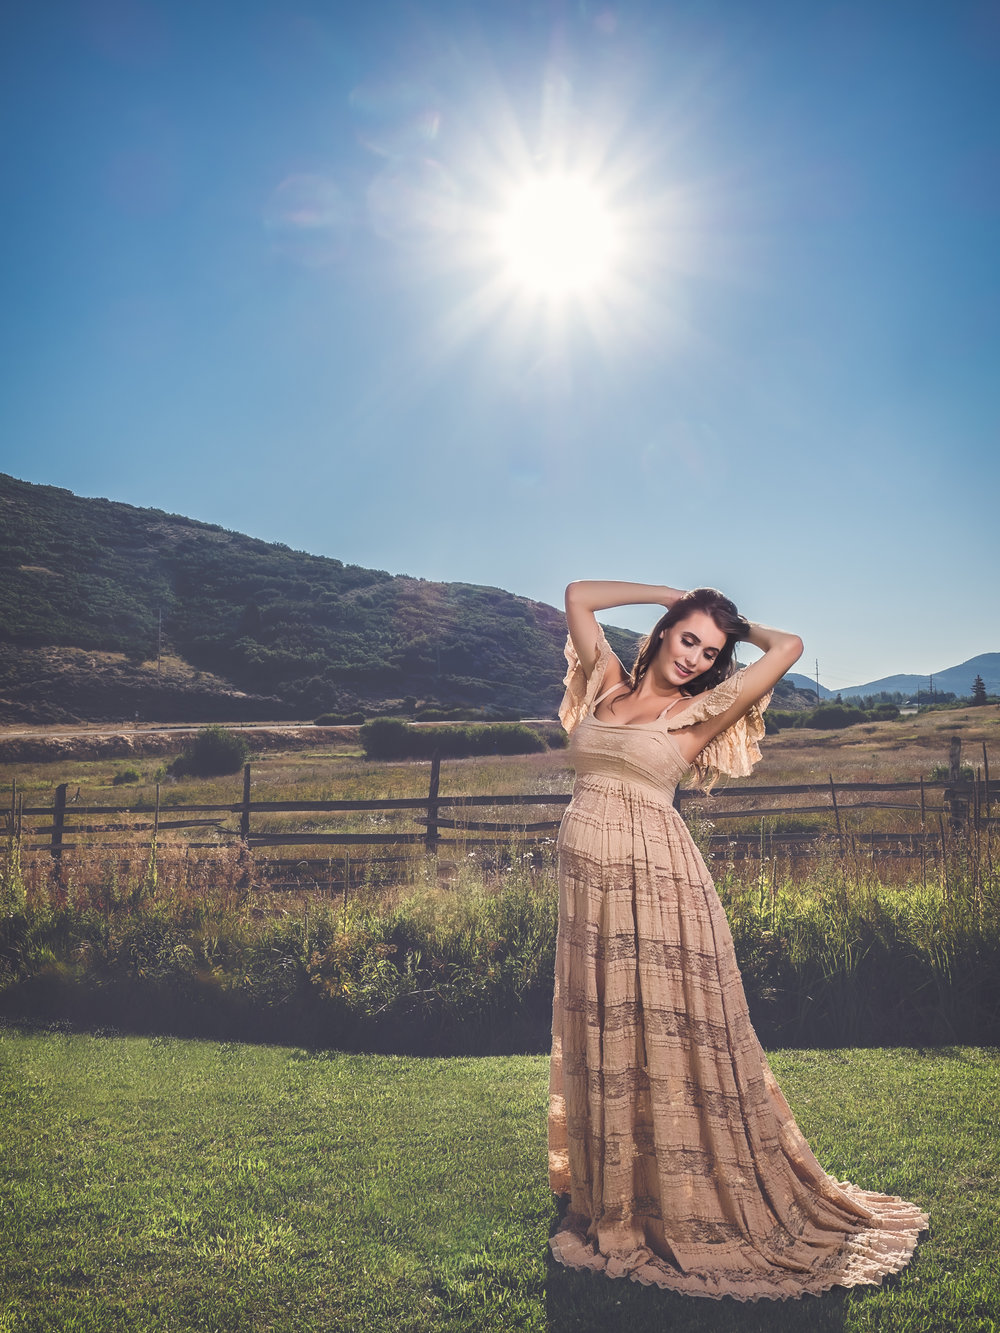 Model: Carly Larsen | Facebook: https://www.facebook.com/larsencarly/ IG: @larsen.carly HMUA 1: Makeup - Tierra's Beauty Bar HMUA 2: Hair - Lexi Harker Beauty Dress/Color: #edithgown in Camel by @sewtrendyaccessories